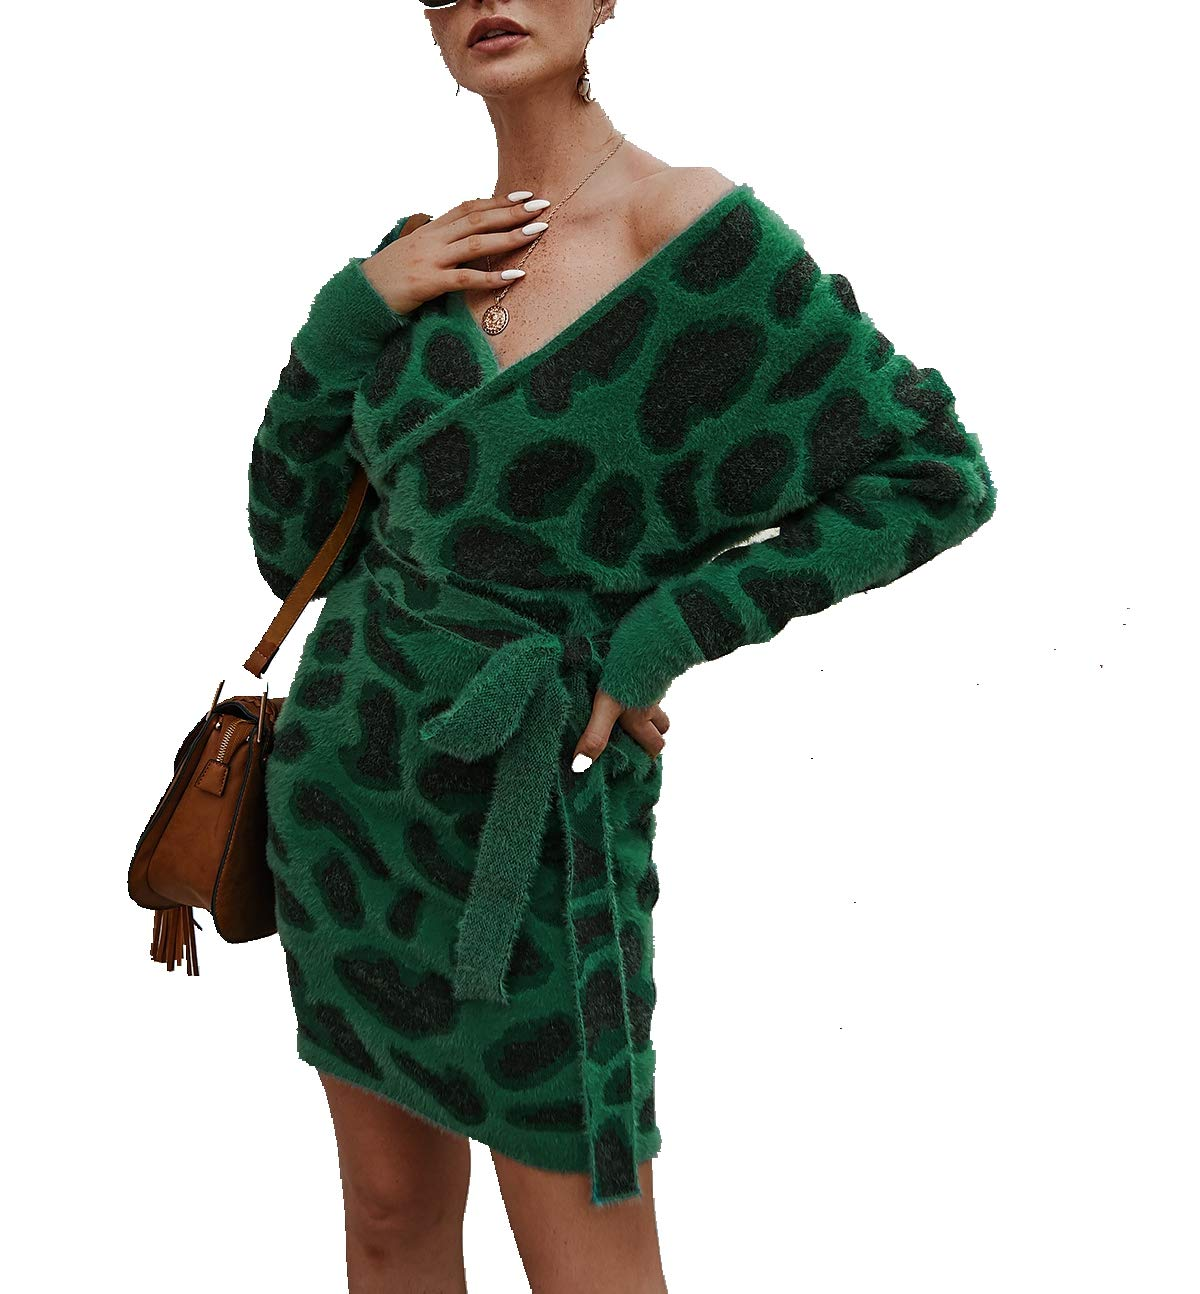 Women's Casual Knit Sweater Wrap Dress,Long Bat Wing Sleeve Leopard Print V Neck Backless Slim Fit Pencil Dresses with Belt Green by KINGLEN Womens Dress